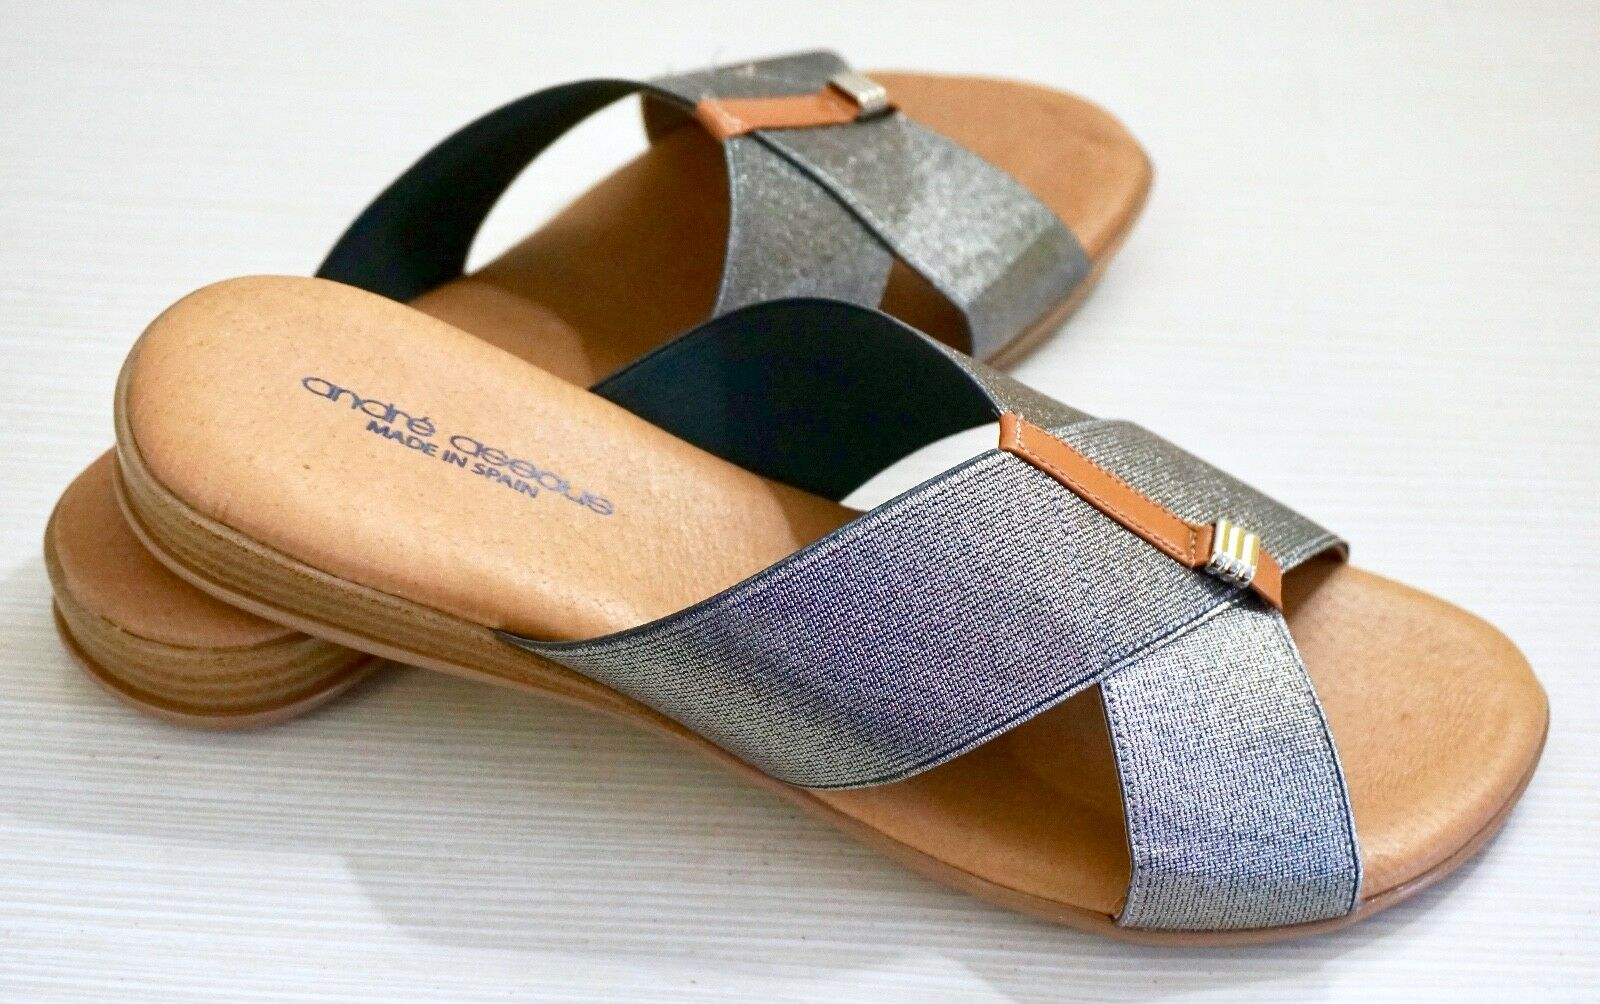 NIB  98 Andre Assous Nani Stacked Heel Elastic Slip-on Sandals, Pewter